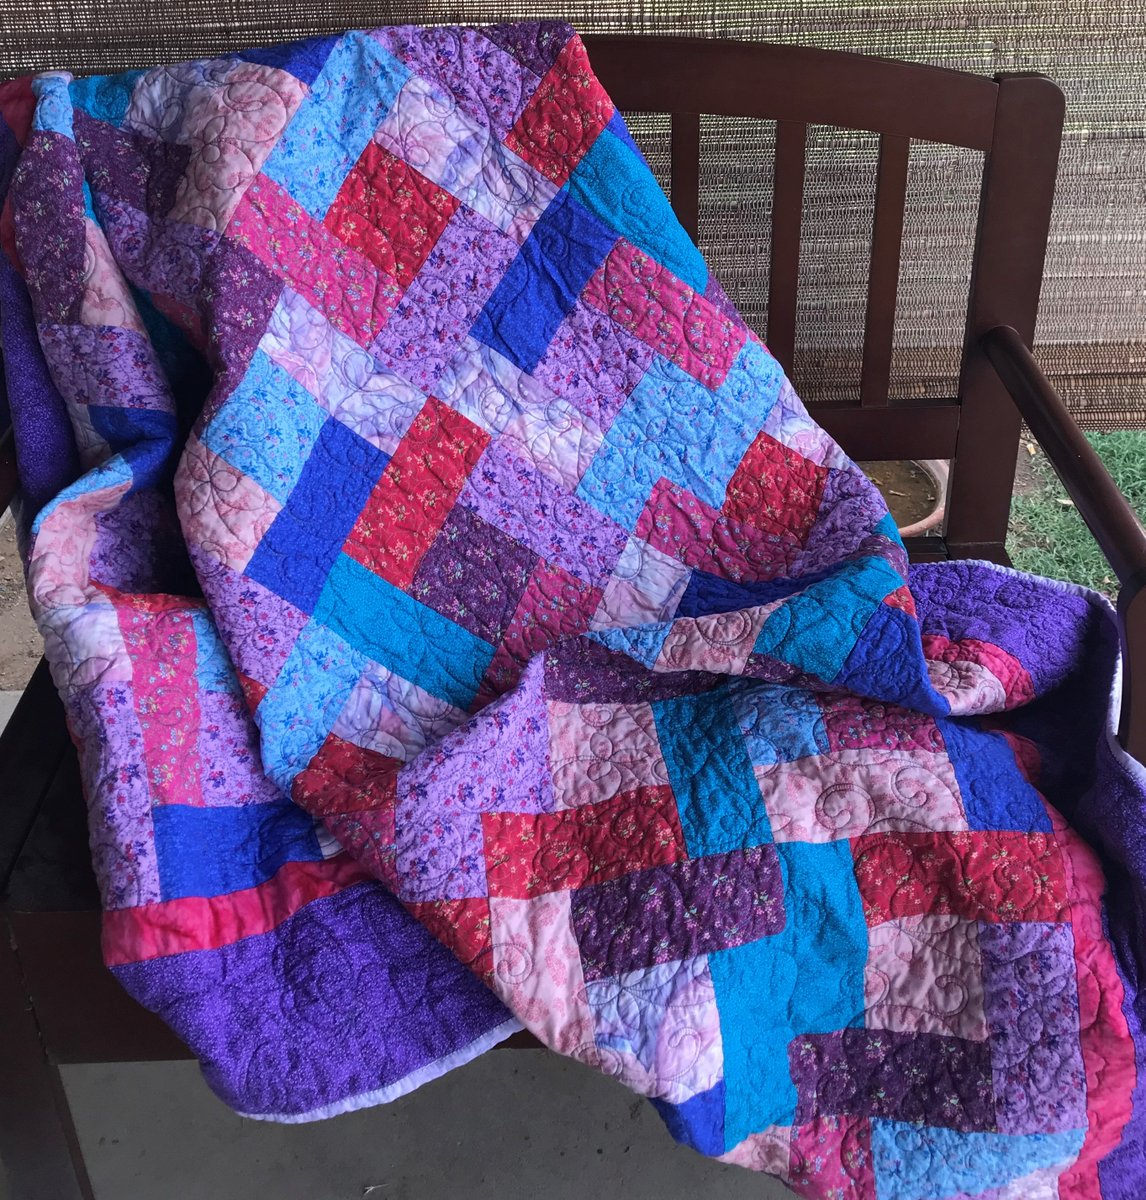 Excited to share in my #etsy shop: 66 x 76 Pink and Purple Floral Quilt https://t.co/odqD6yUAsV #pink #purple #geometric #cotton #fabric #orange #red #green #blue https://t.co/uzV98FkENv